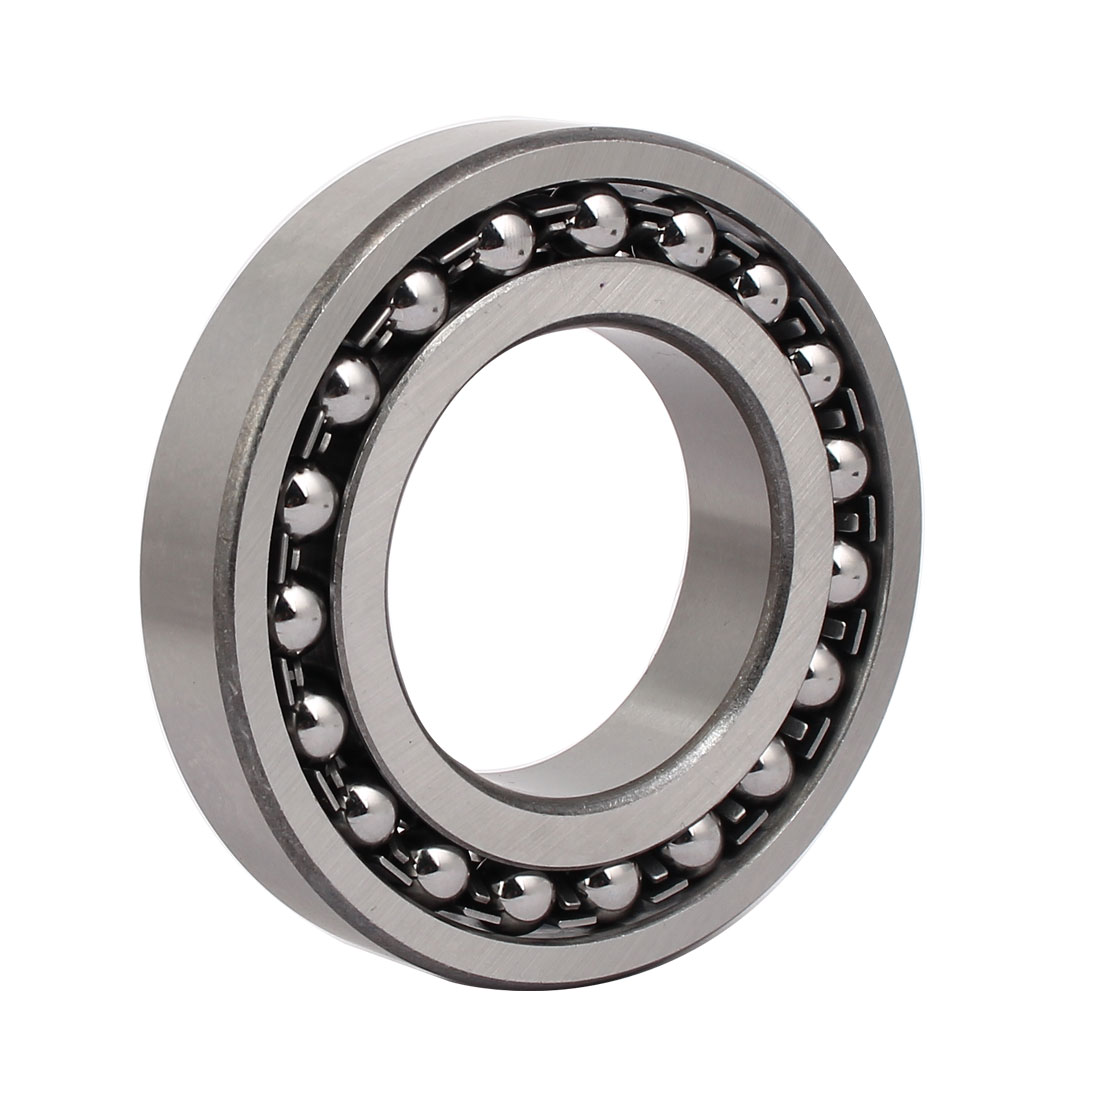 110mmx60mmx22mm 1212 Double Row Self-Aligning Ball Bearing Silver Tone